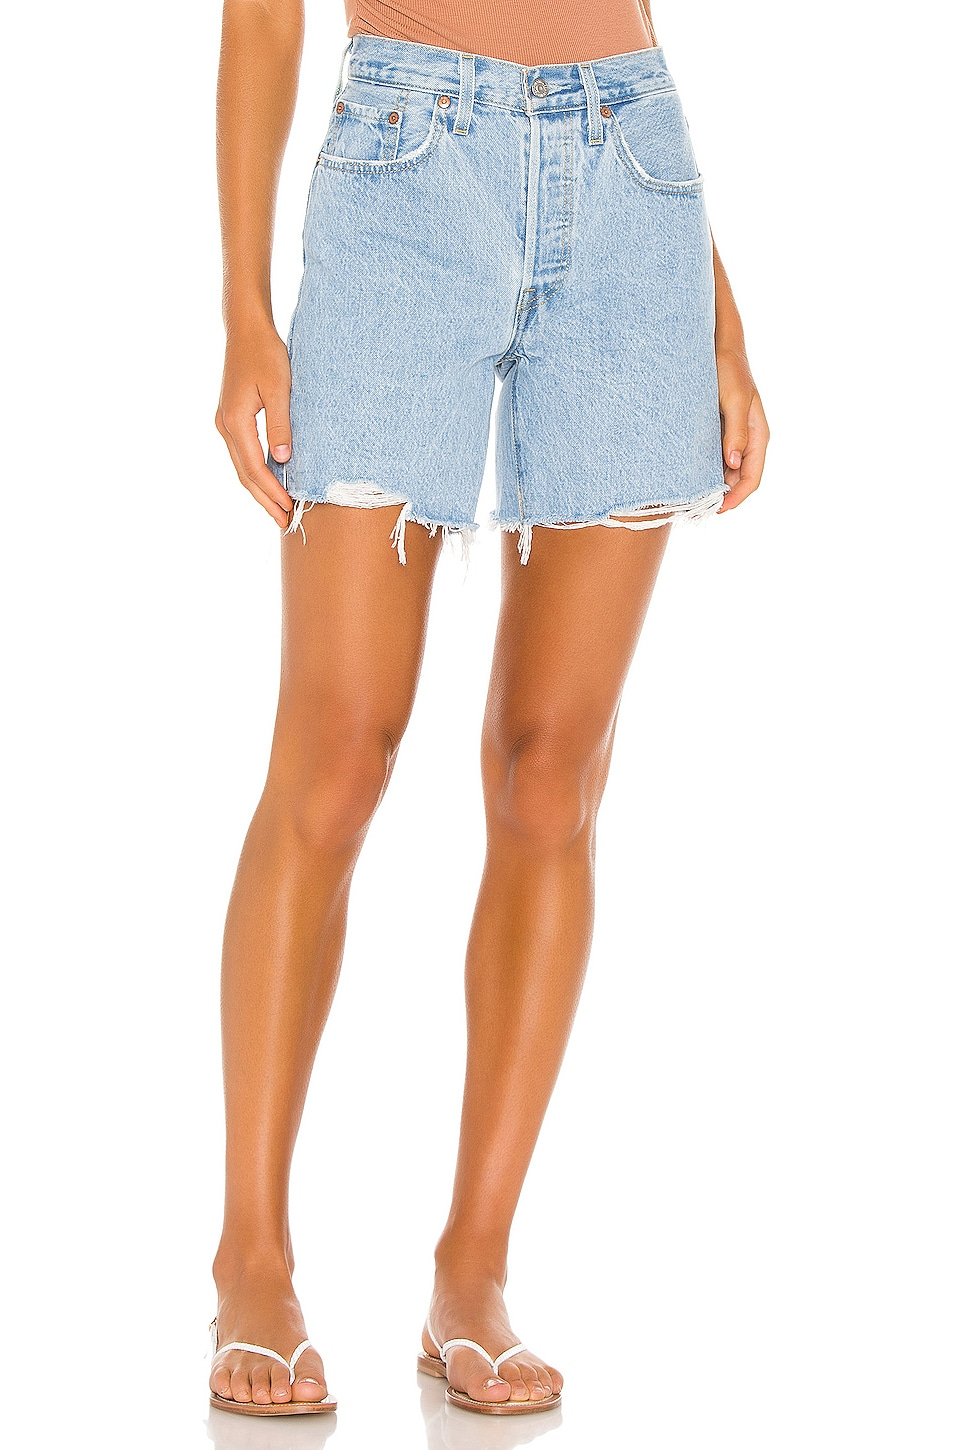 501 Mid Thigh Short             LEVI'S                                                                                                       CA$ 94.58 13